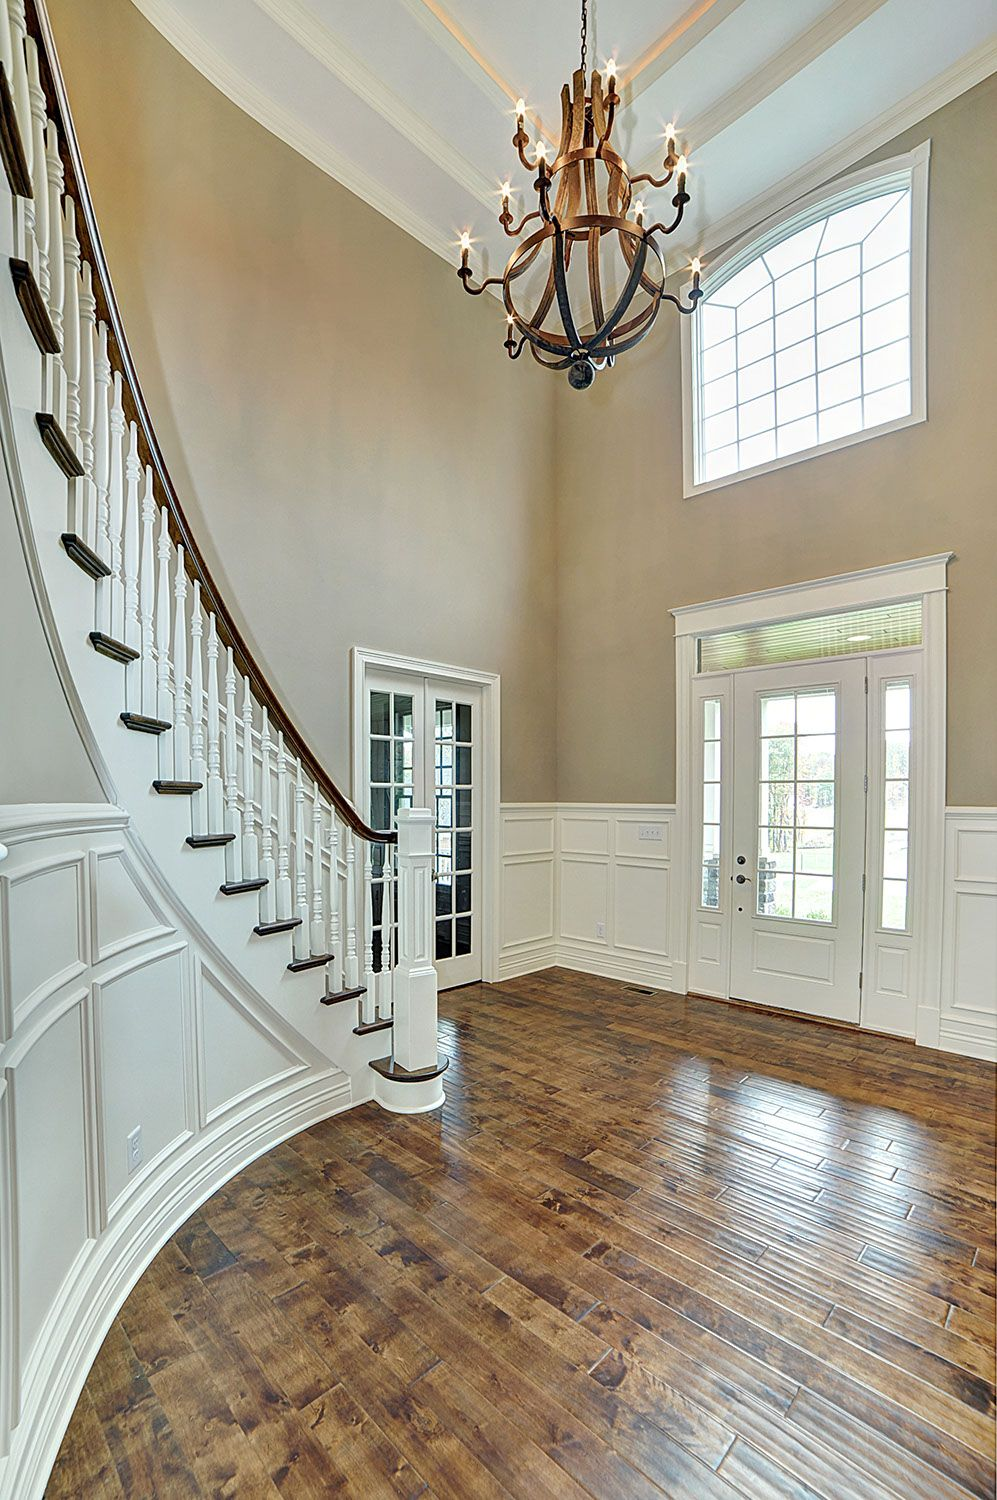 Lodge Foyer Lighting : Curved staircase in two story foyer with white wainscoting